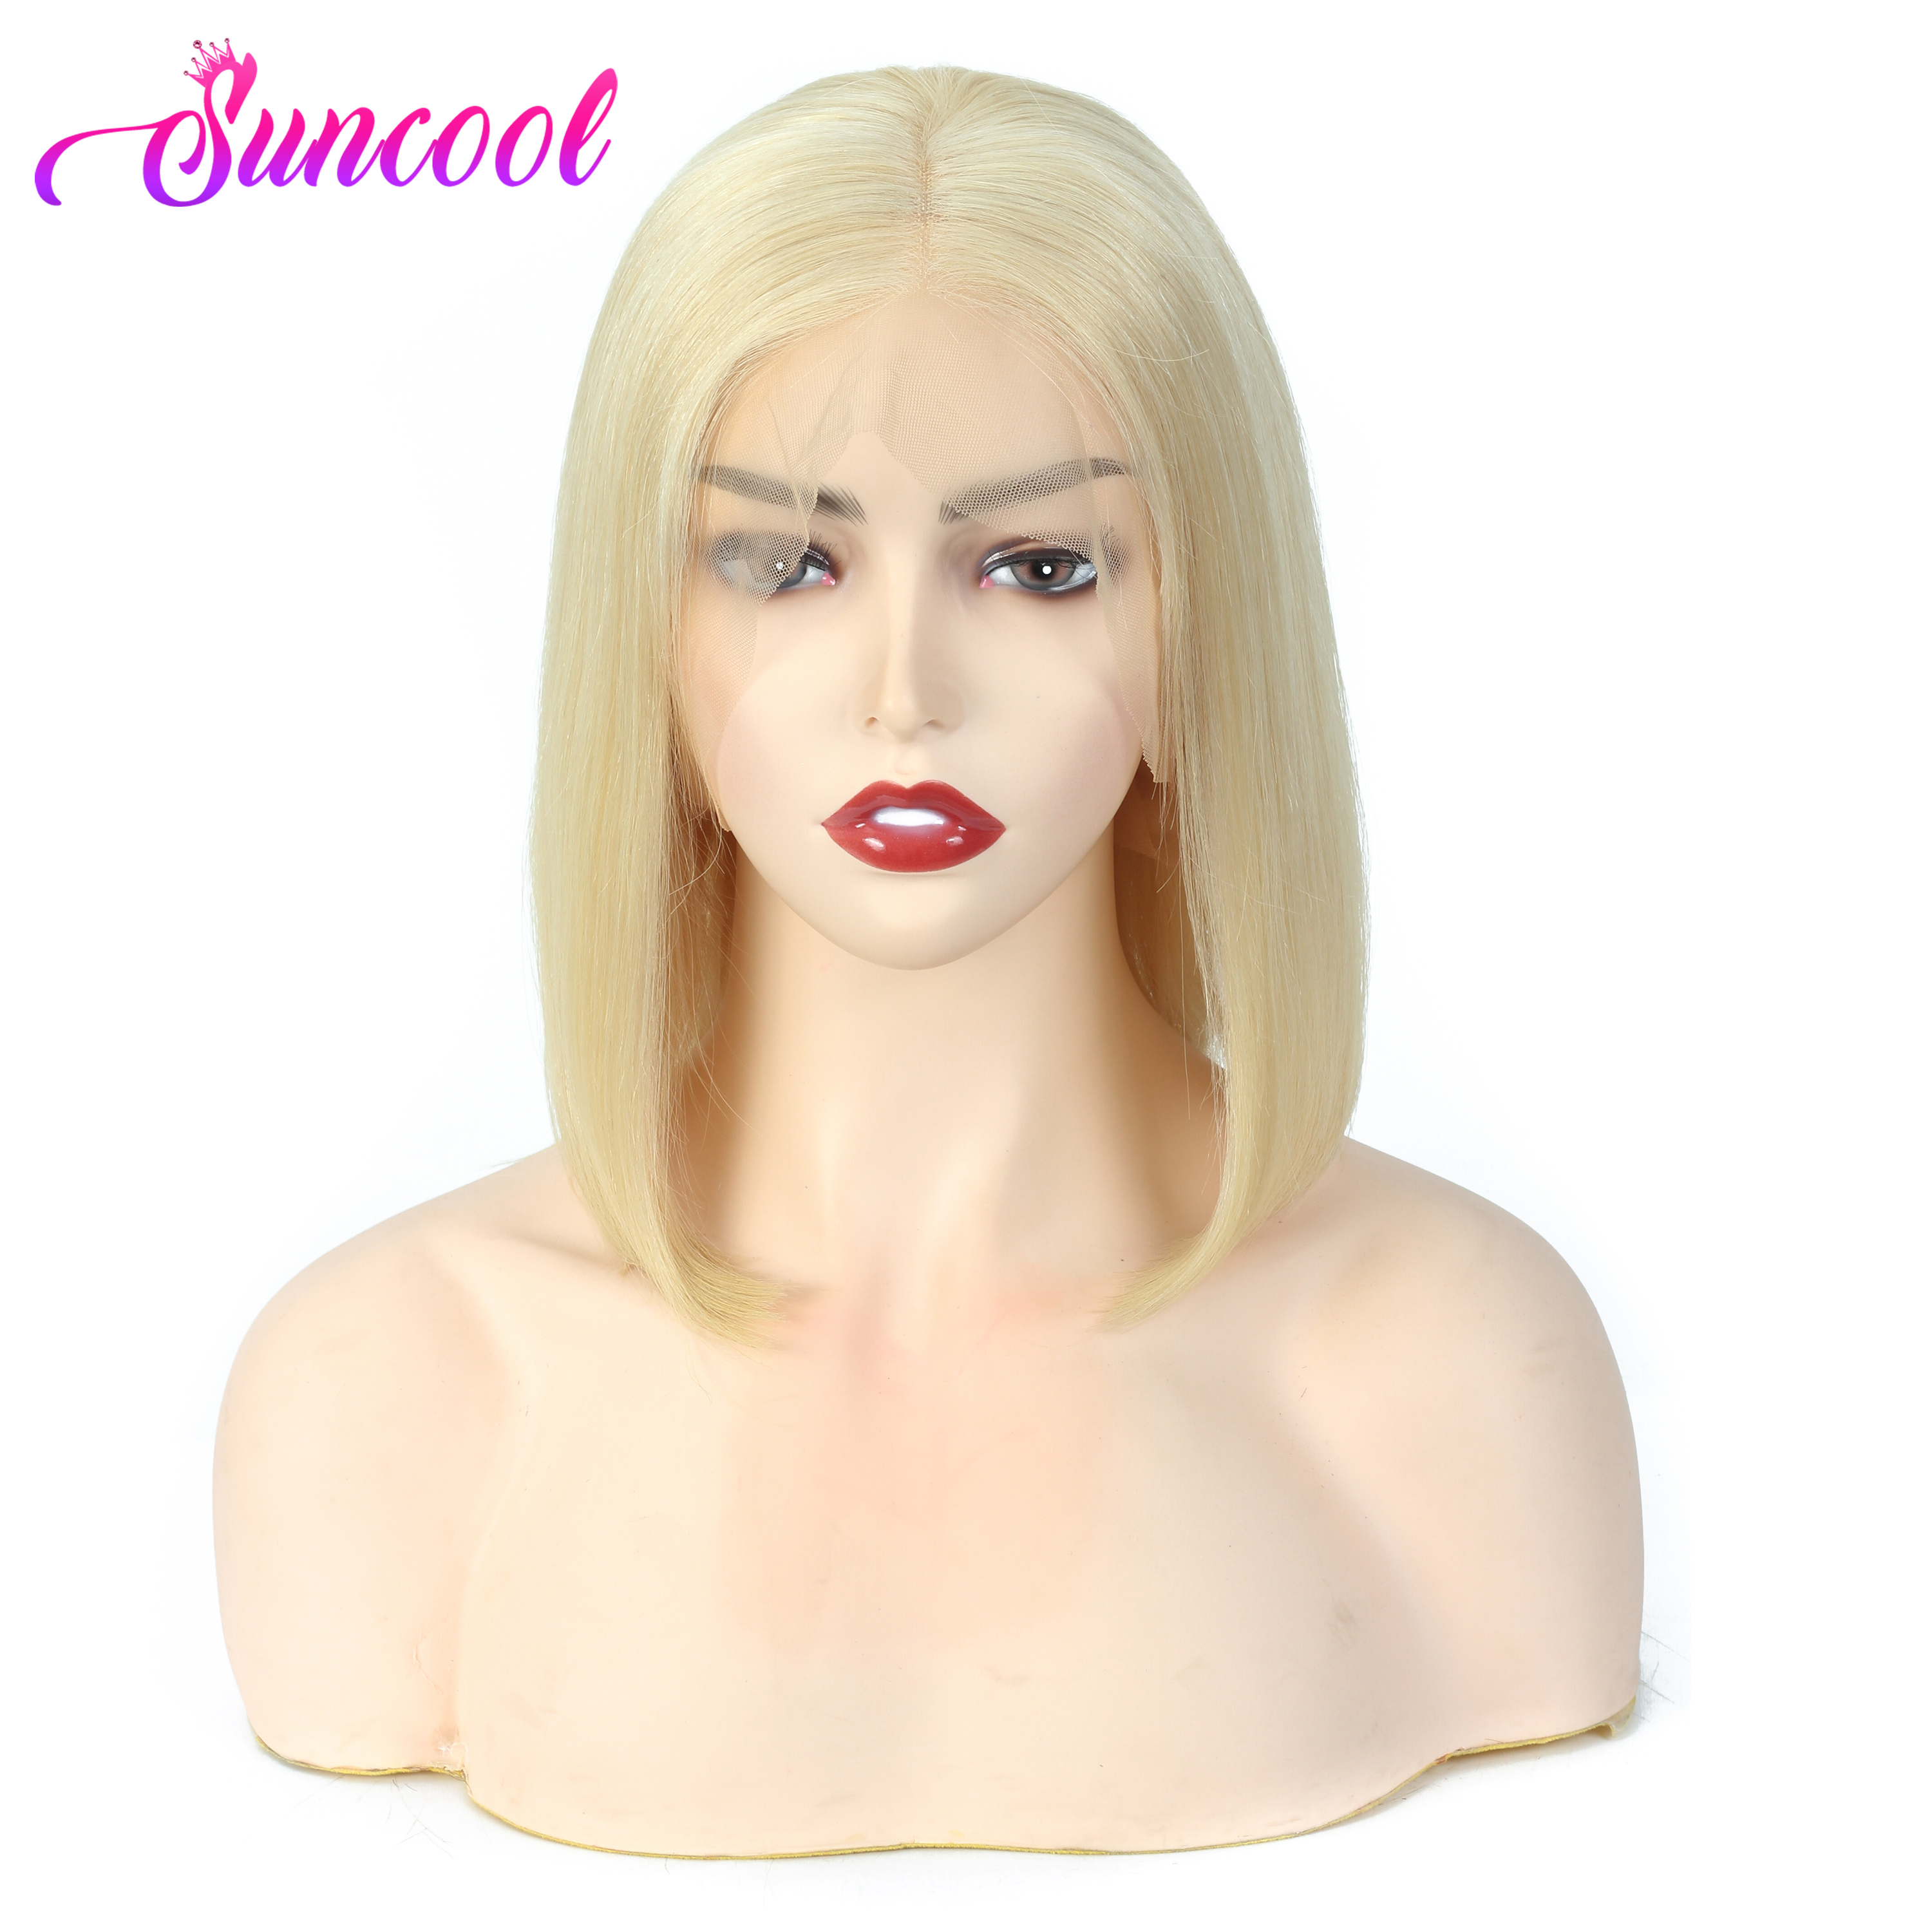 Straight Bob Lace Front Wigs Pre Plucked Hairline Suncool Short Human Hair Wigs Brazilian Straight Blonde 613 Lace Front Wigs